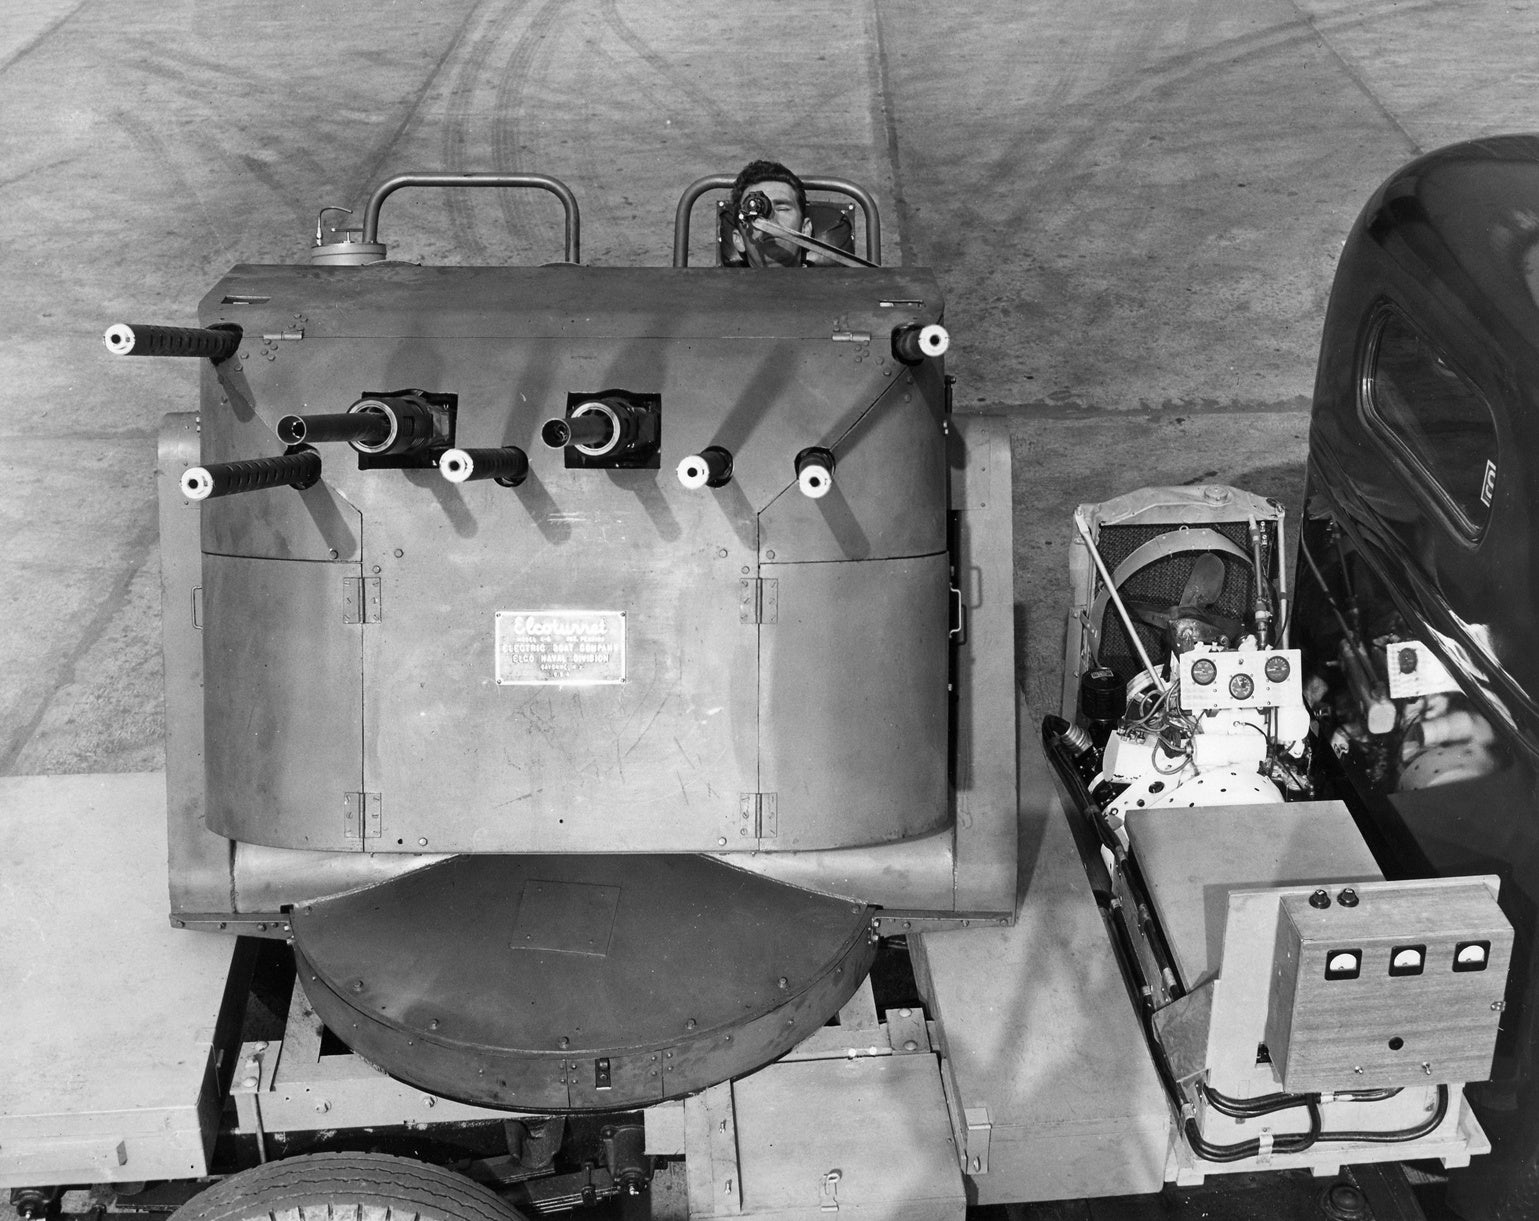 The Navy designed this lethal one-man turret in World War II